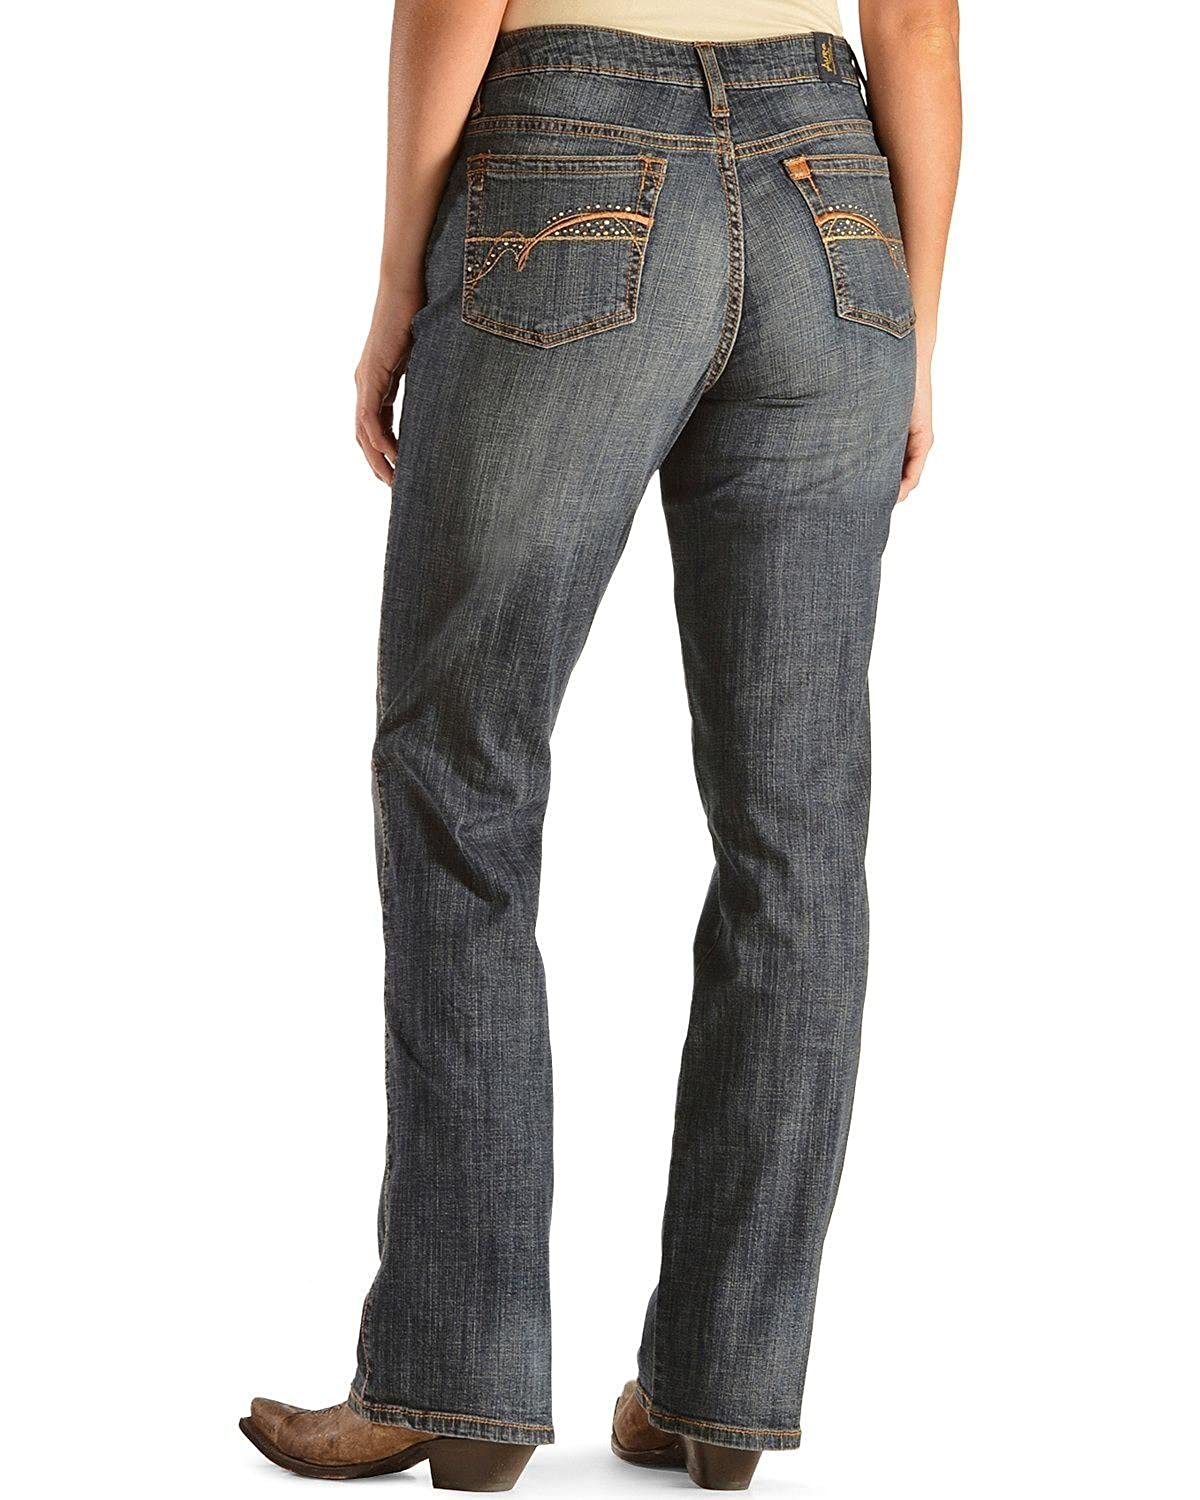 bfb5b43bb20 Amazon.com  Wrangler Women s Aura Instantly Slimming Jean  Clothing